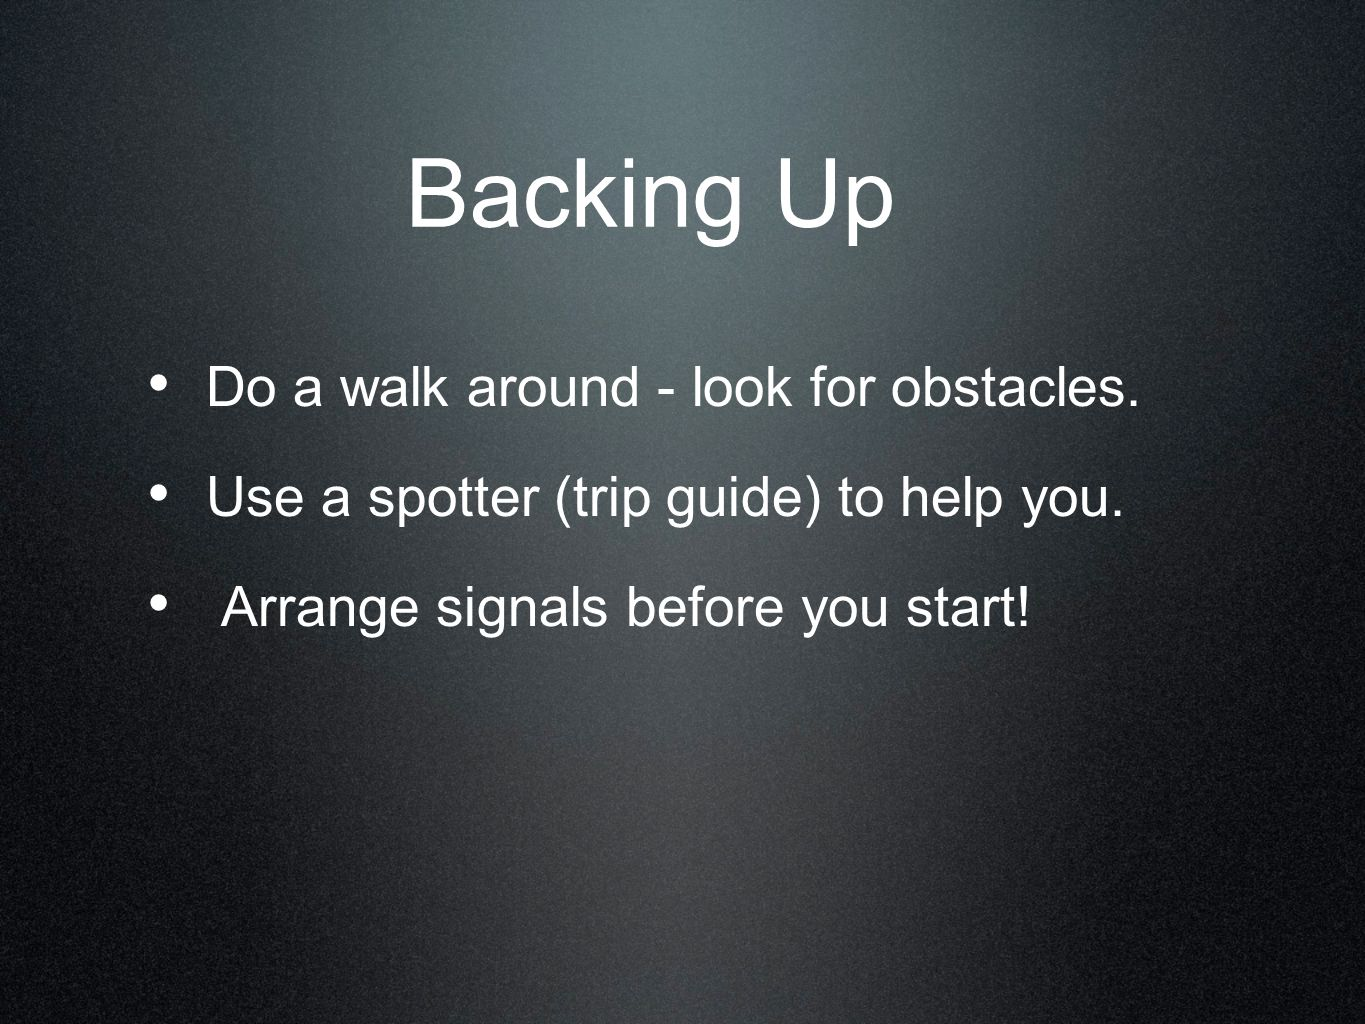 Backing Up Do a walk around - look for obstacles.